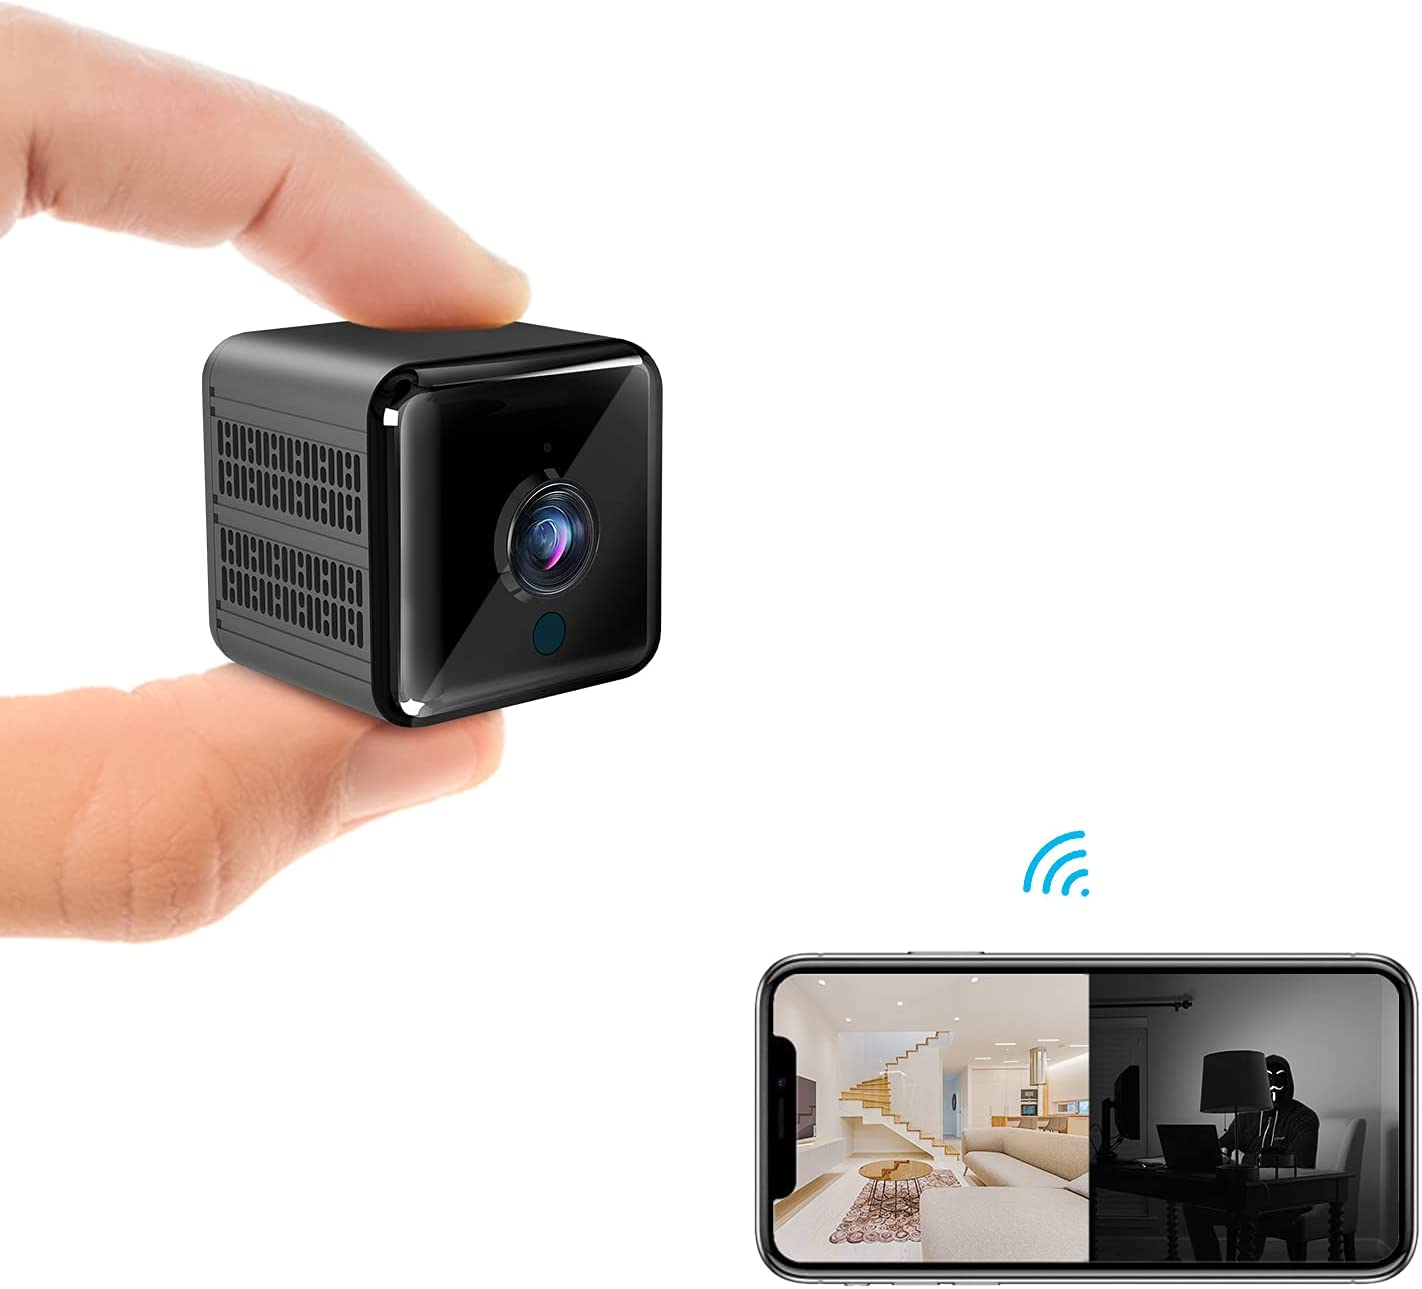 Spy Camera Super Night Vision KINGDANS Hidden Camera 1080P- Mini Camera,Nanny cams Wireless with Cell Phone app, Motion Detection,Video Share,Mini Security Camera for Indoor/Home/Hotel/Warehouse